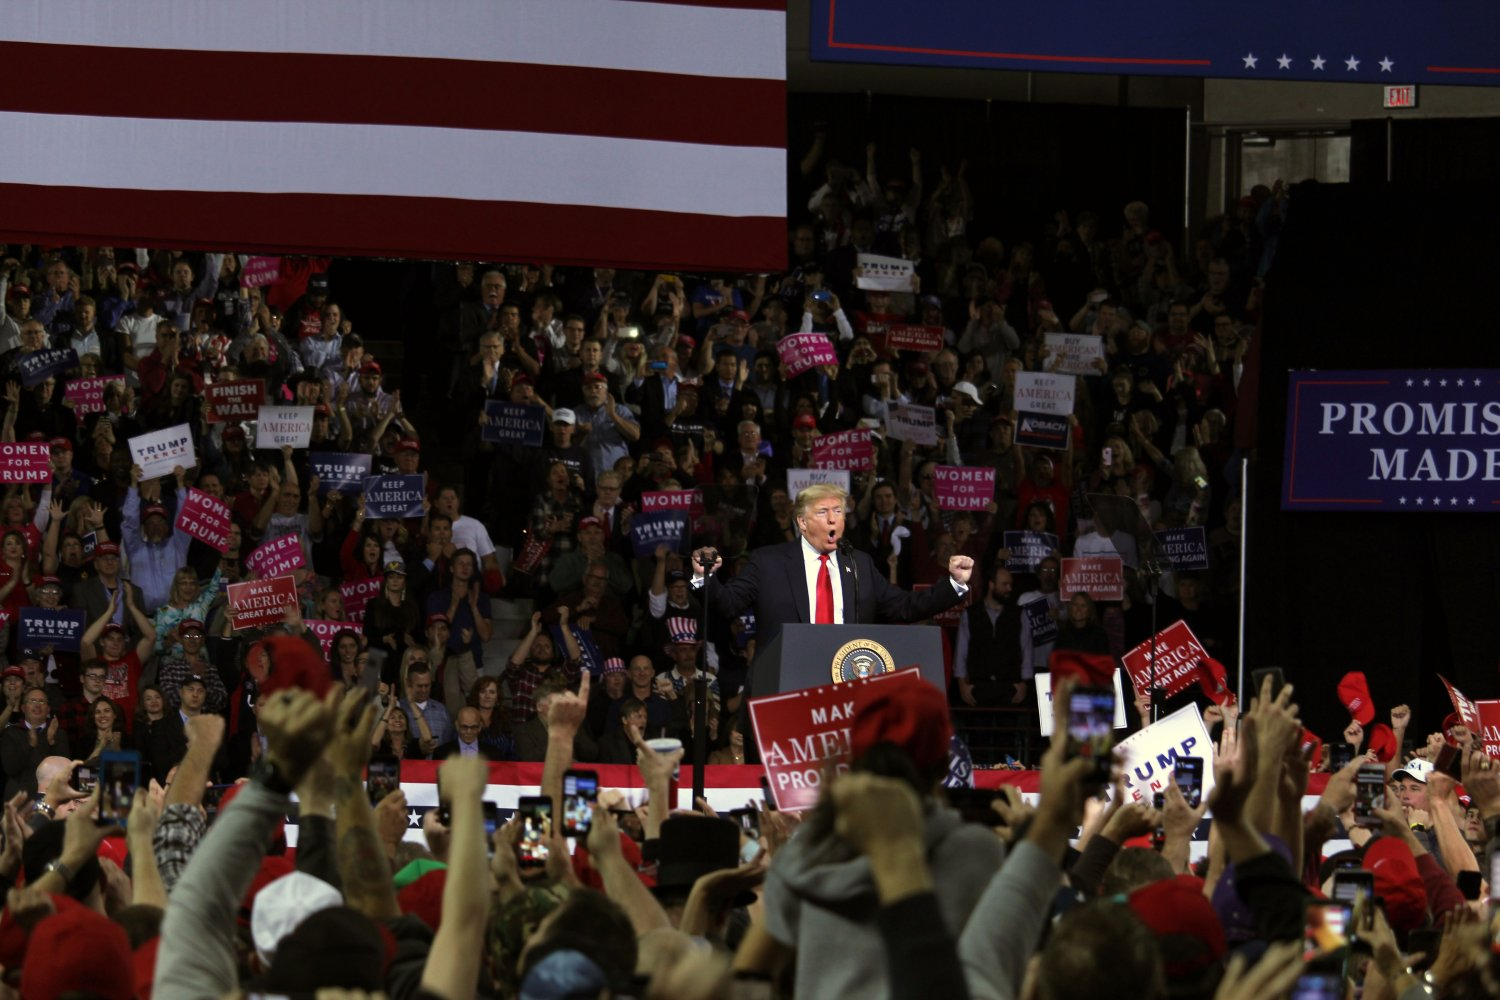 President Donald Trump pumps up the crowd at a campaign rally in Topeka, Kansas. The rally took place in the Expo Center and flustered in a crowd of around 11 thousand people in support of Trump's 2020 presidential run.